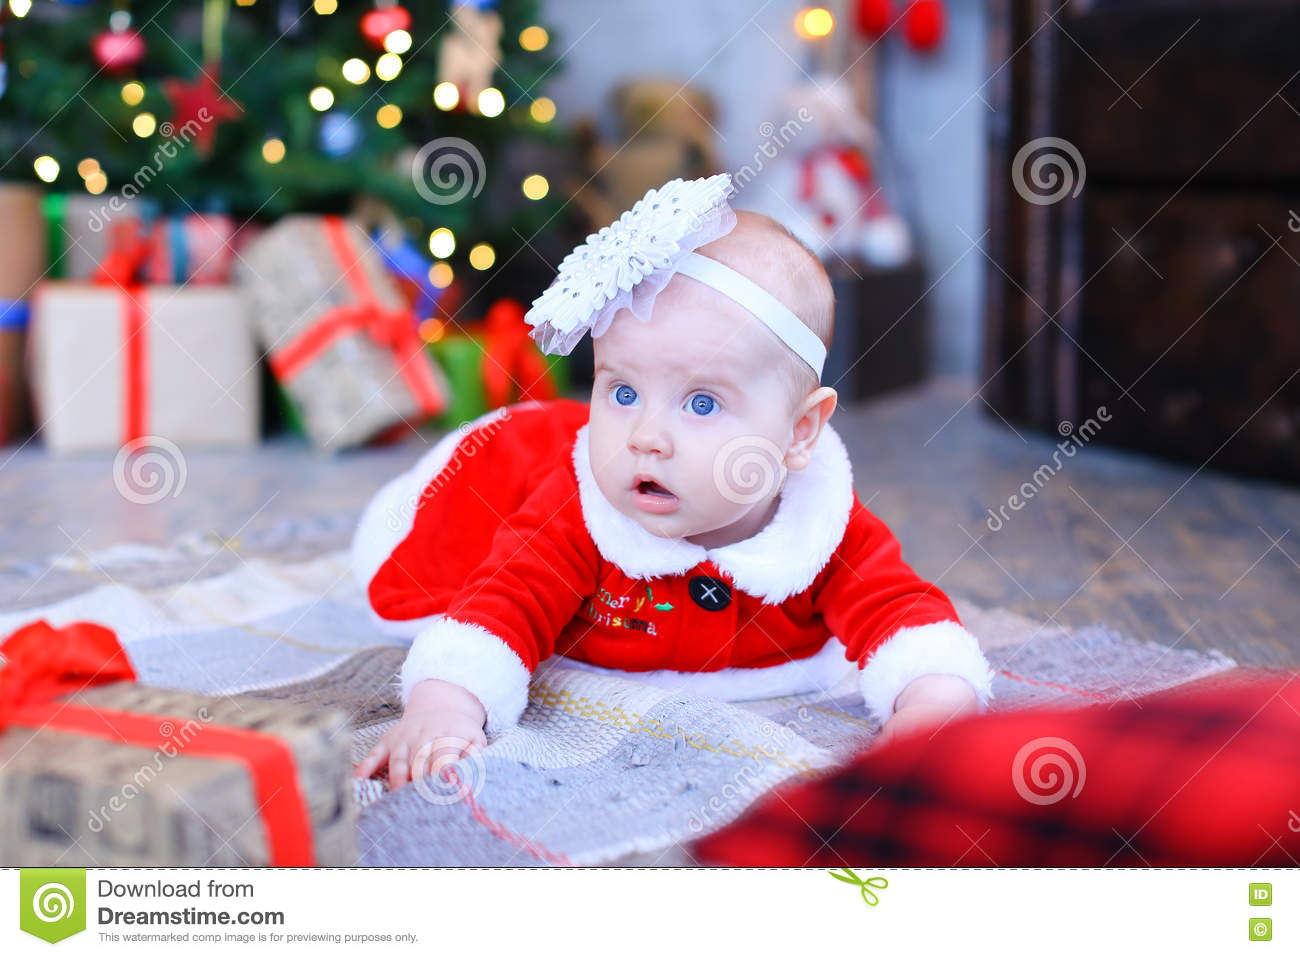 bc7dcb8ea Little infant girl lying on plaid in red dress and white rim with flower on  head on background luminous Christmas tree and boxes with gifts.